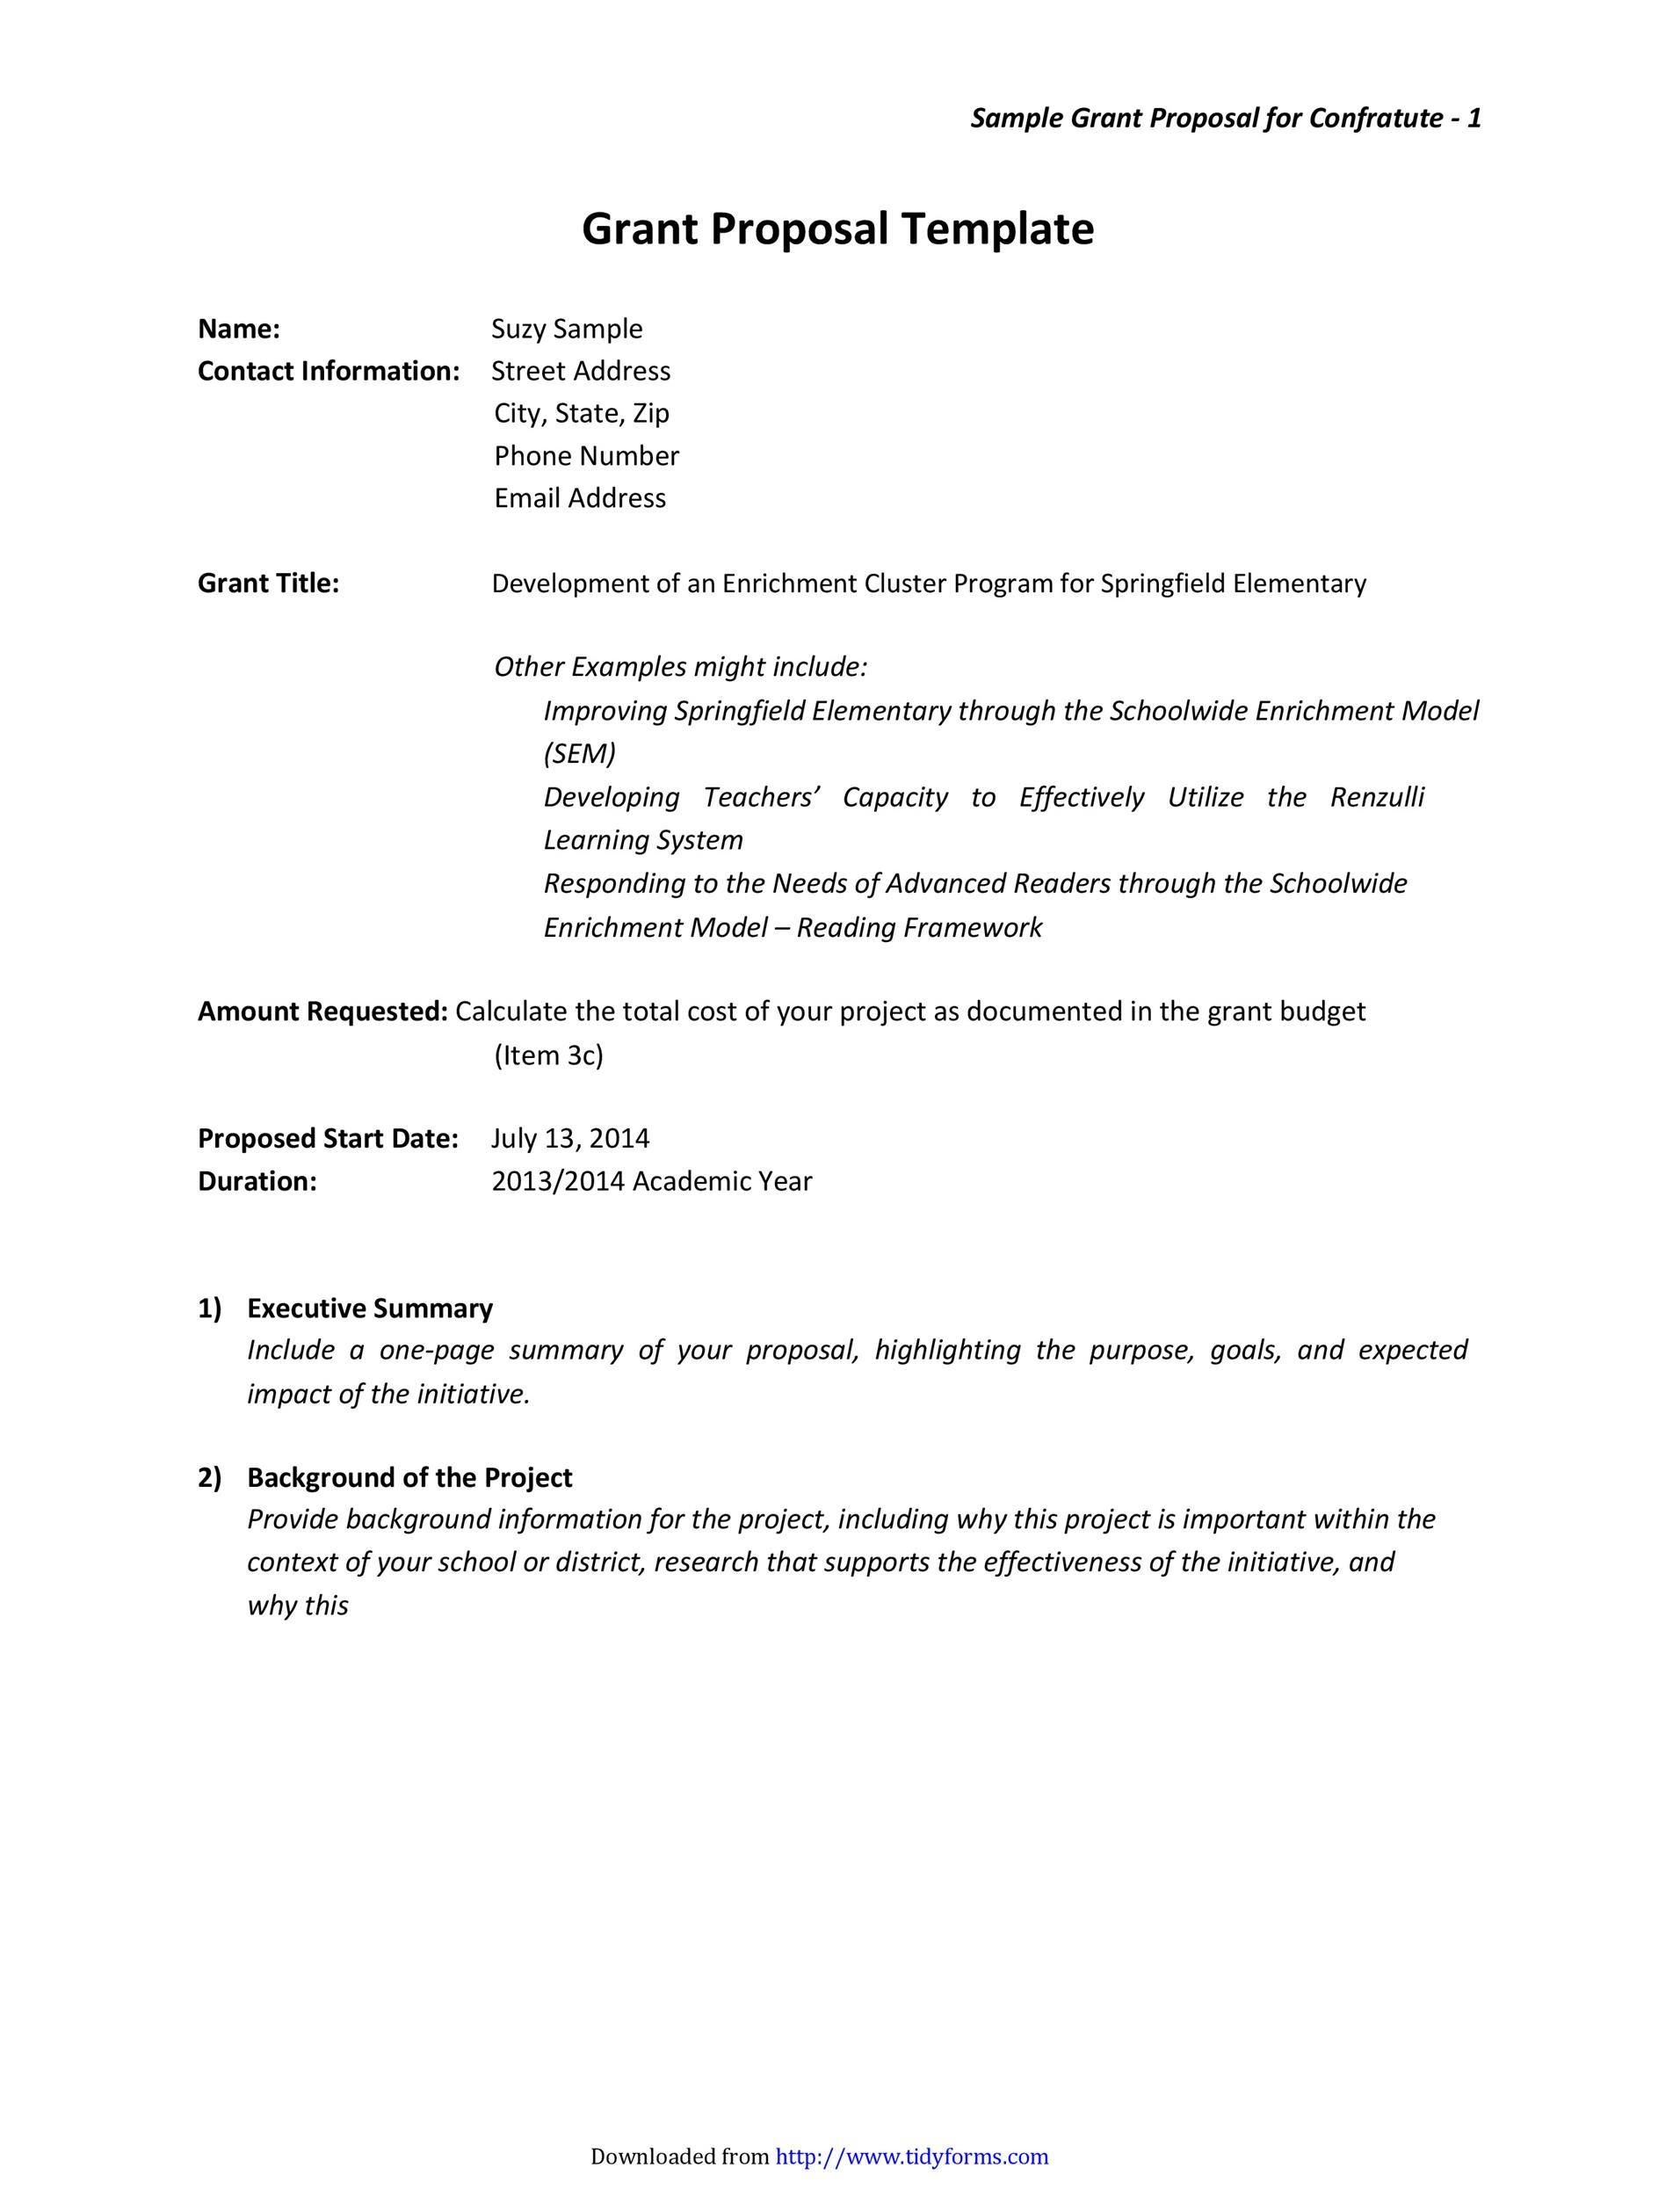 Contemporary Sample Grant Proposal Templates Elaboration Resume